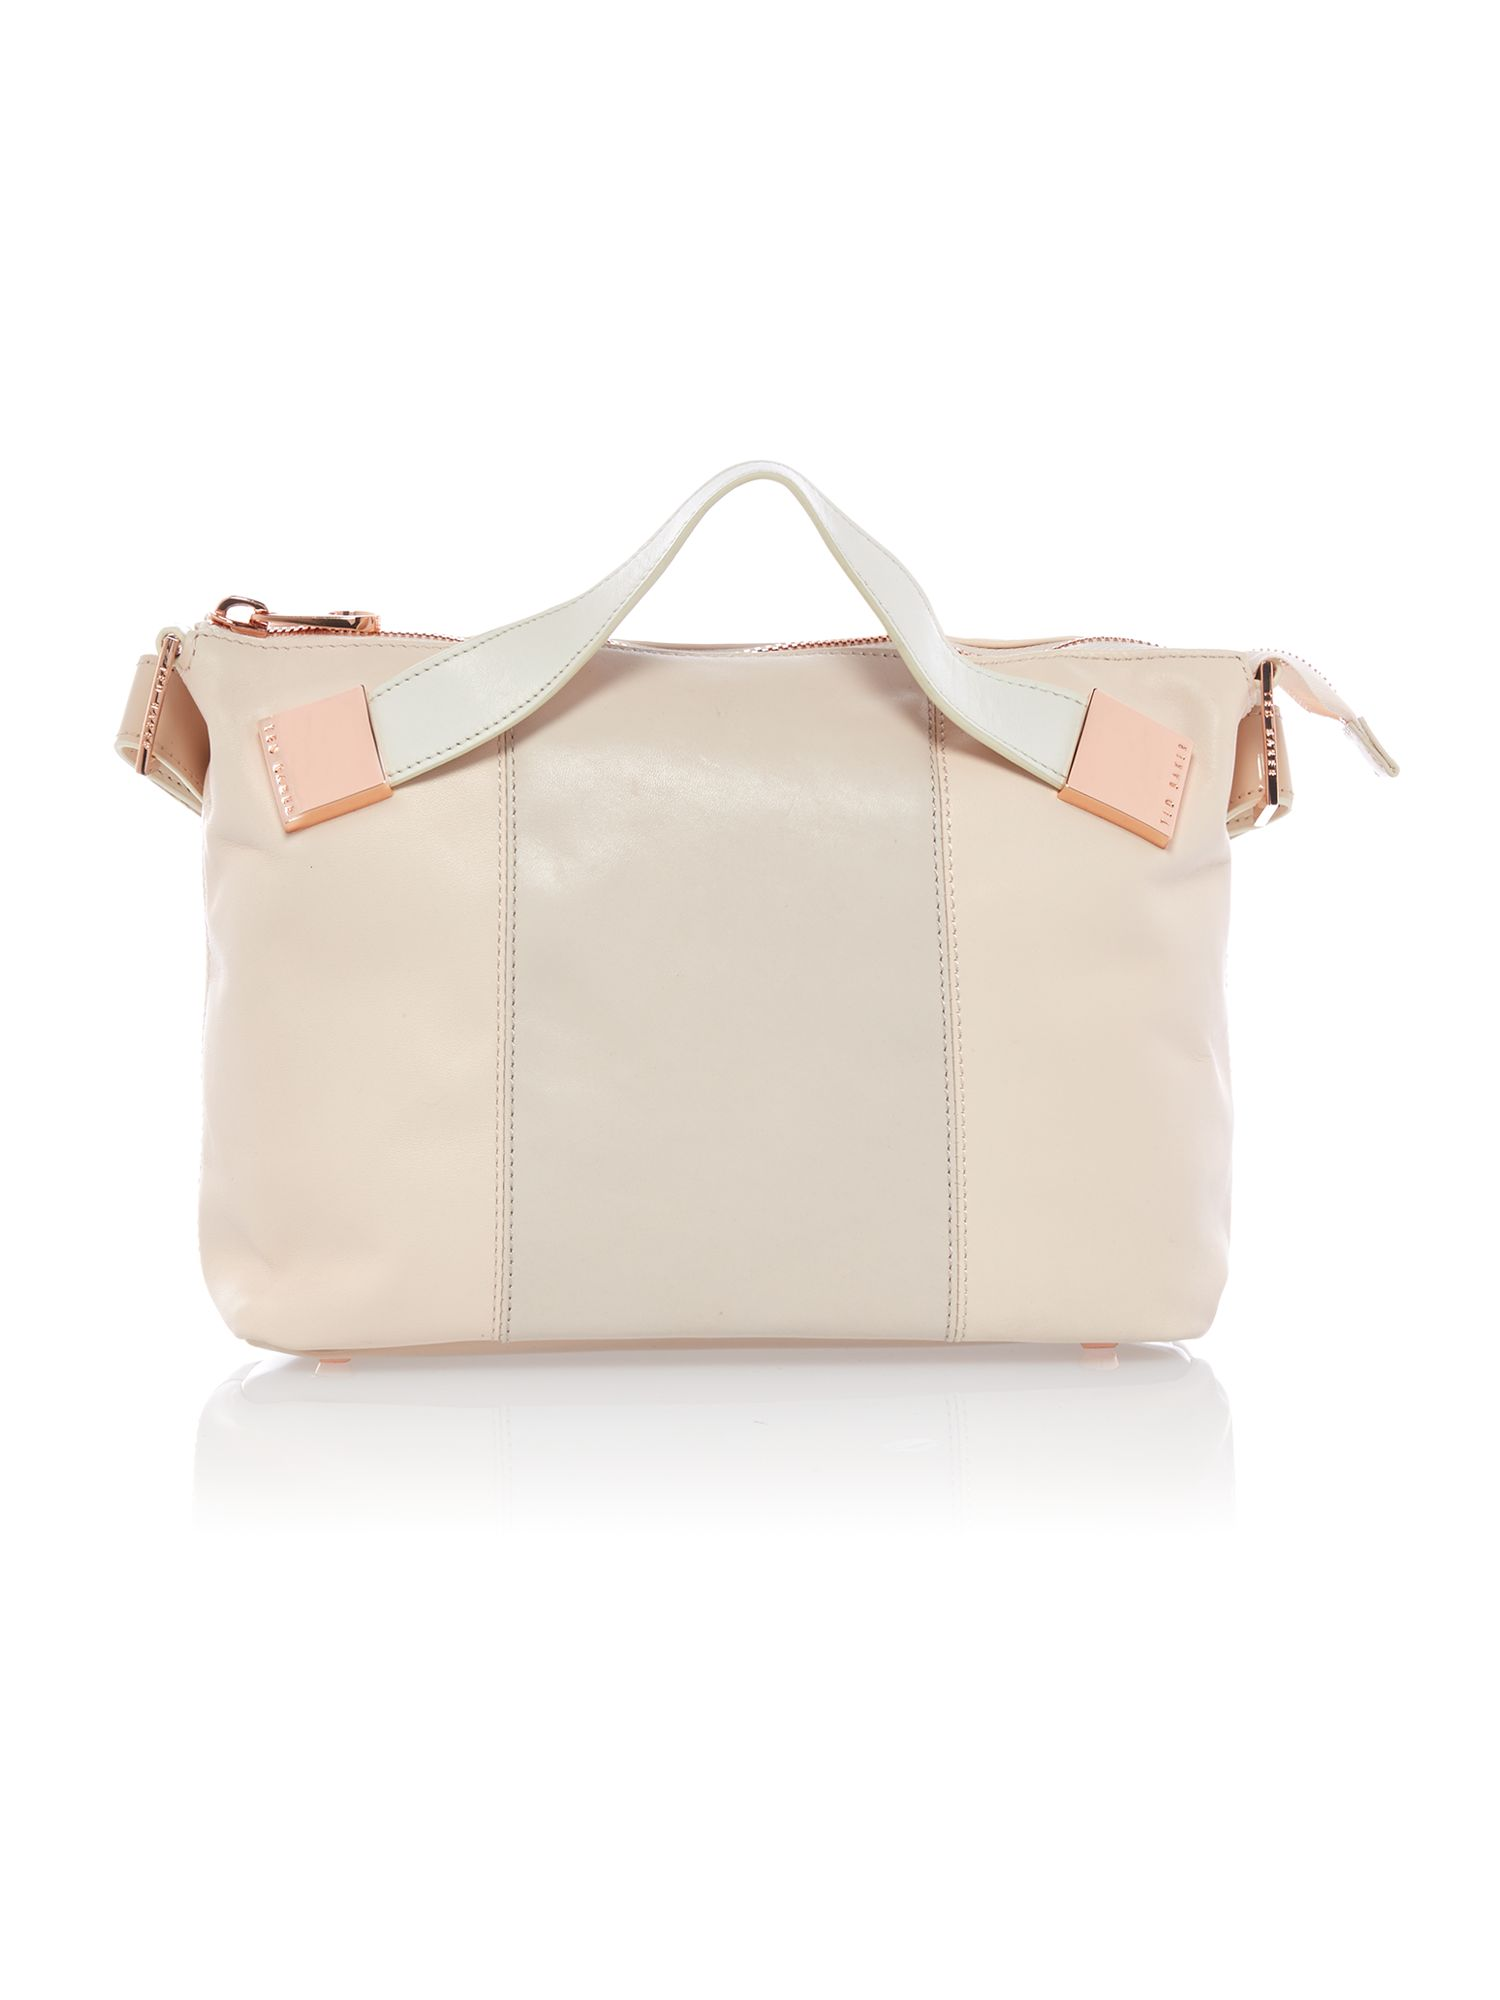 Medium nude and pink tote bag